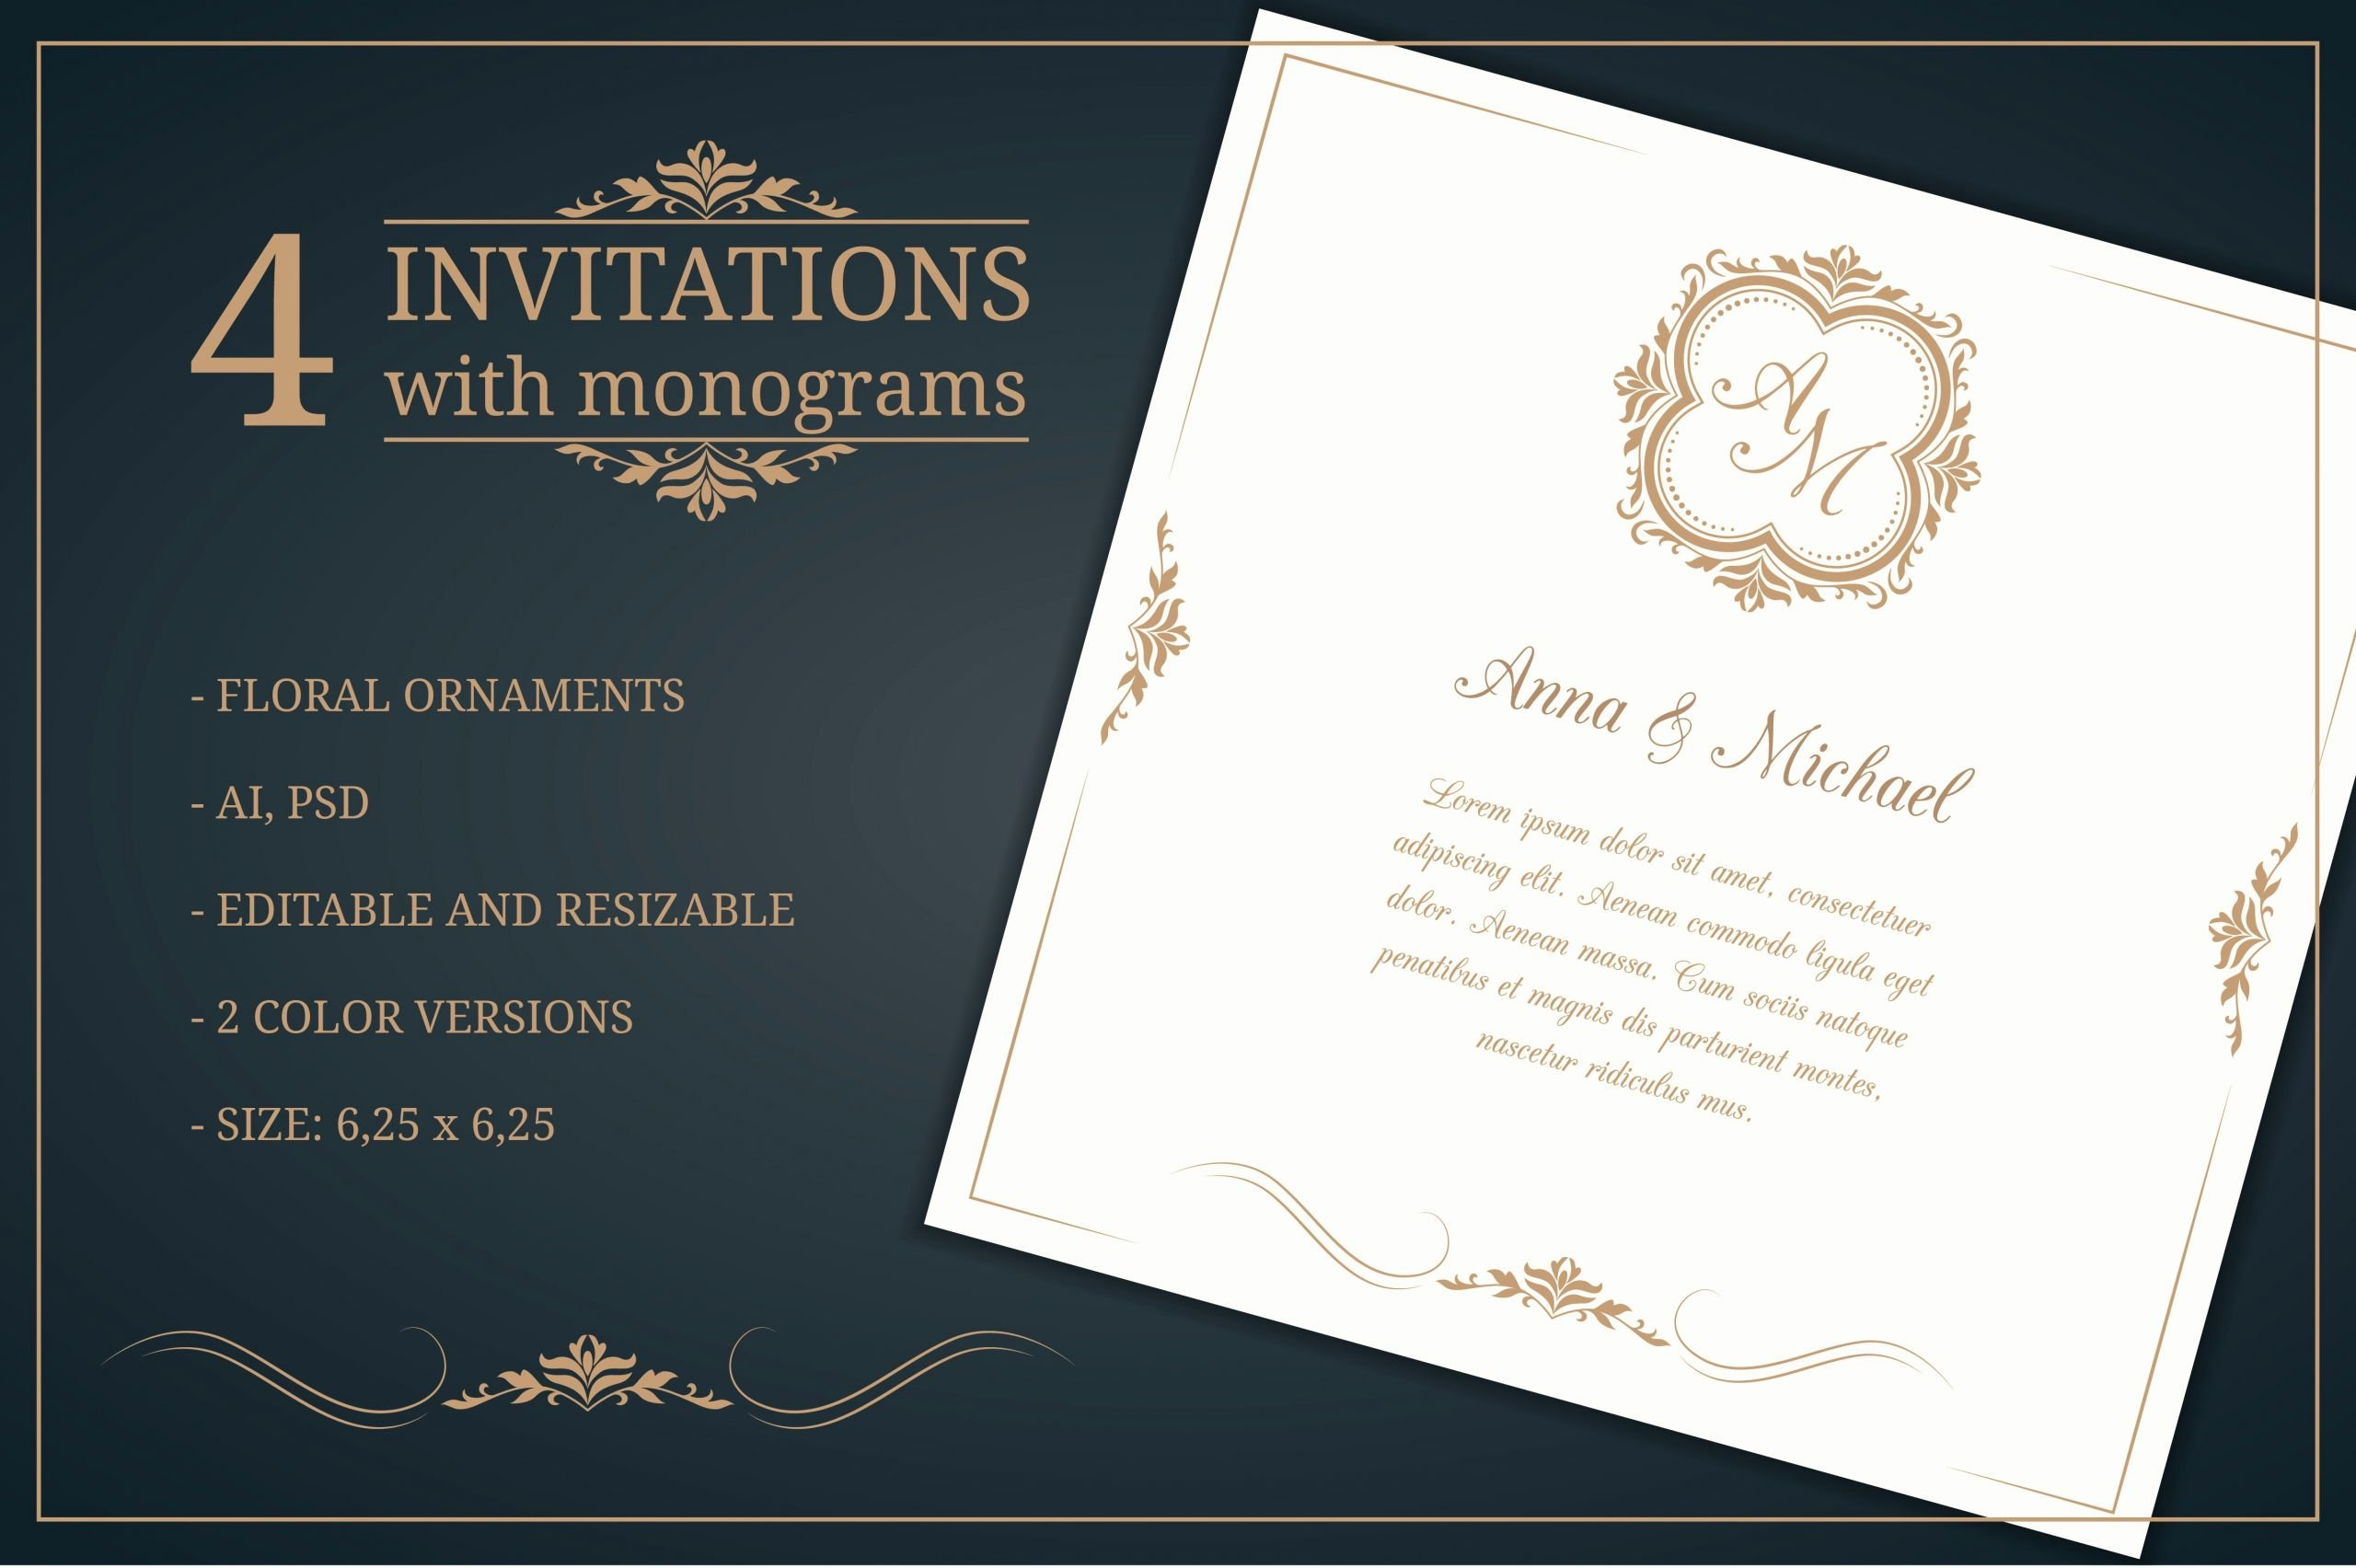 Printable Wedding Invitations Template Beautiful Wedding Invitations with Monograms Wedding Templates